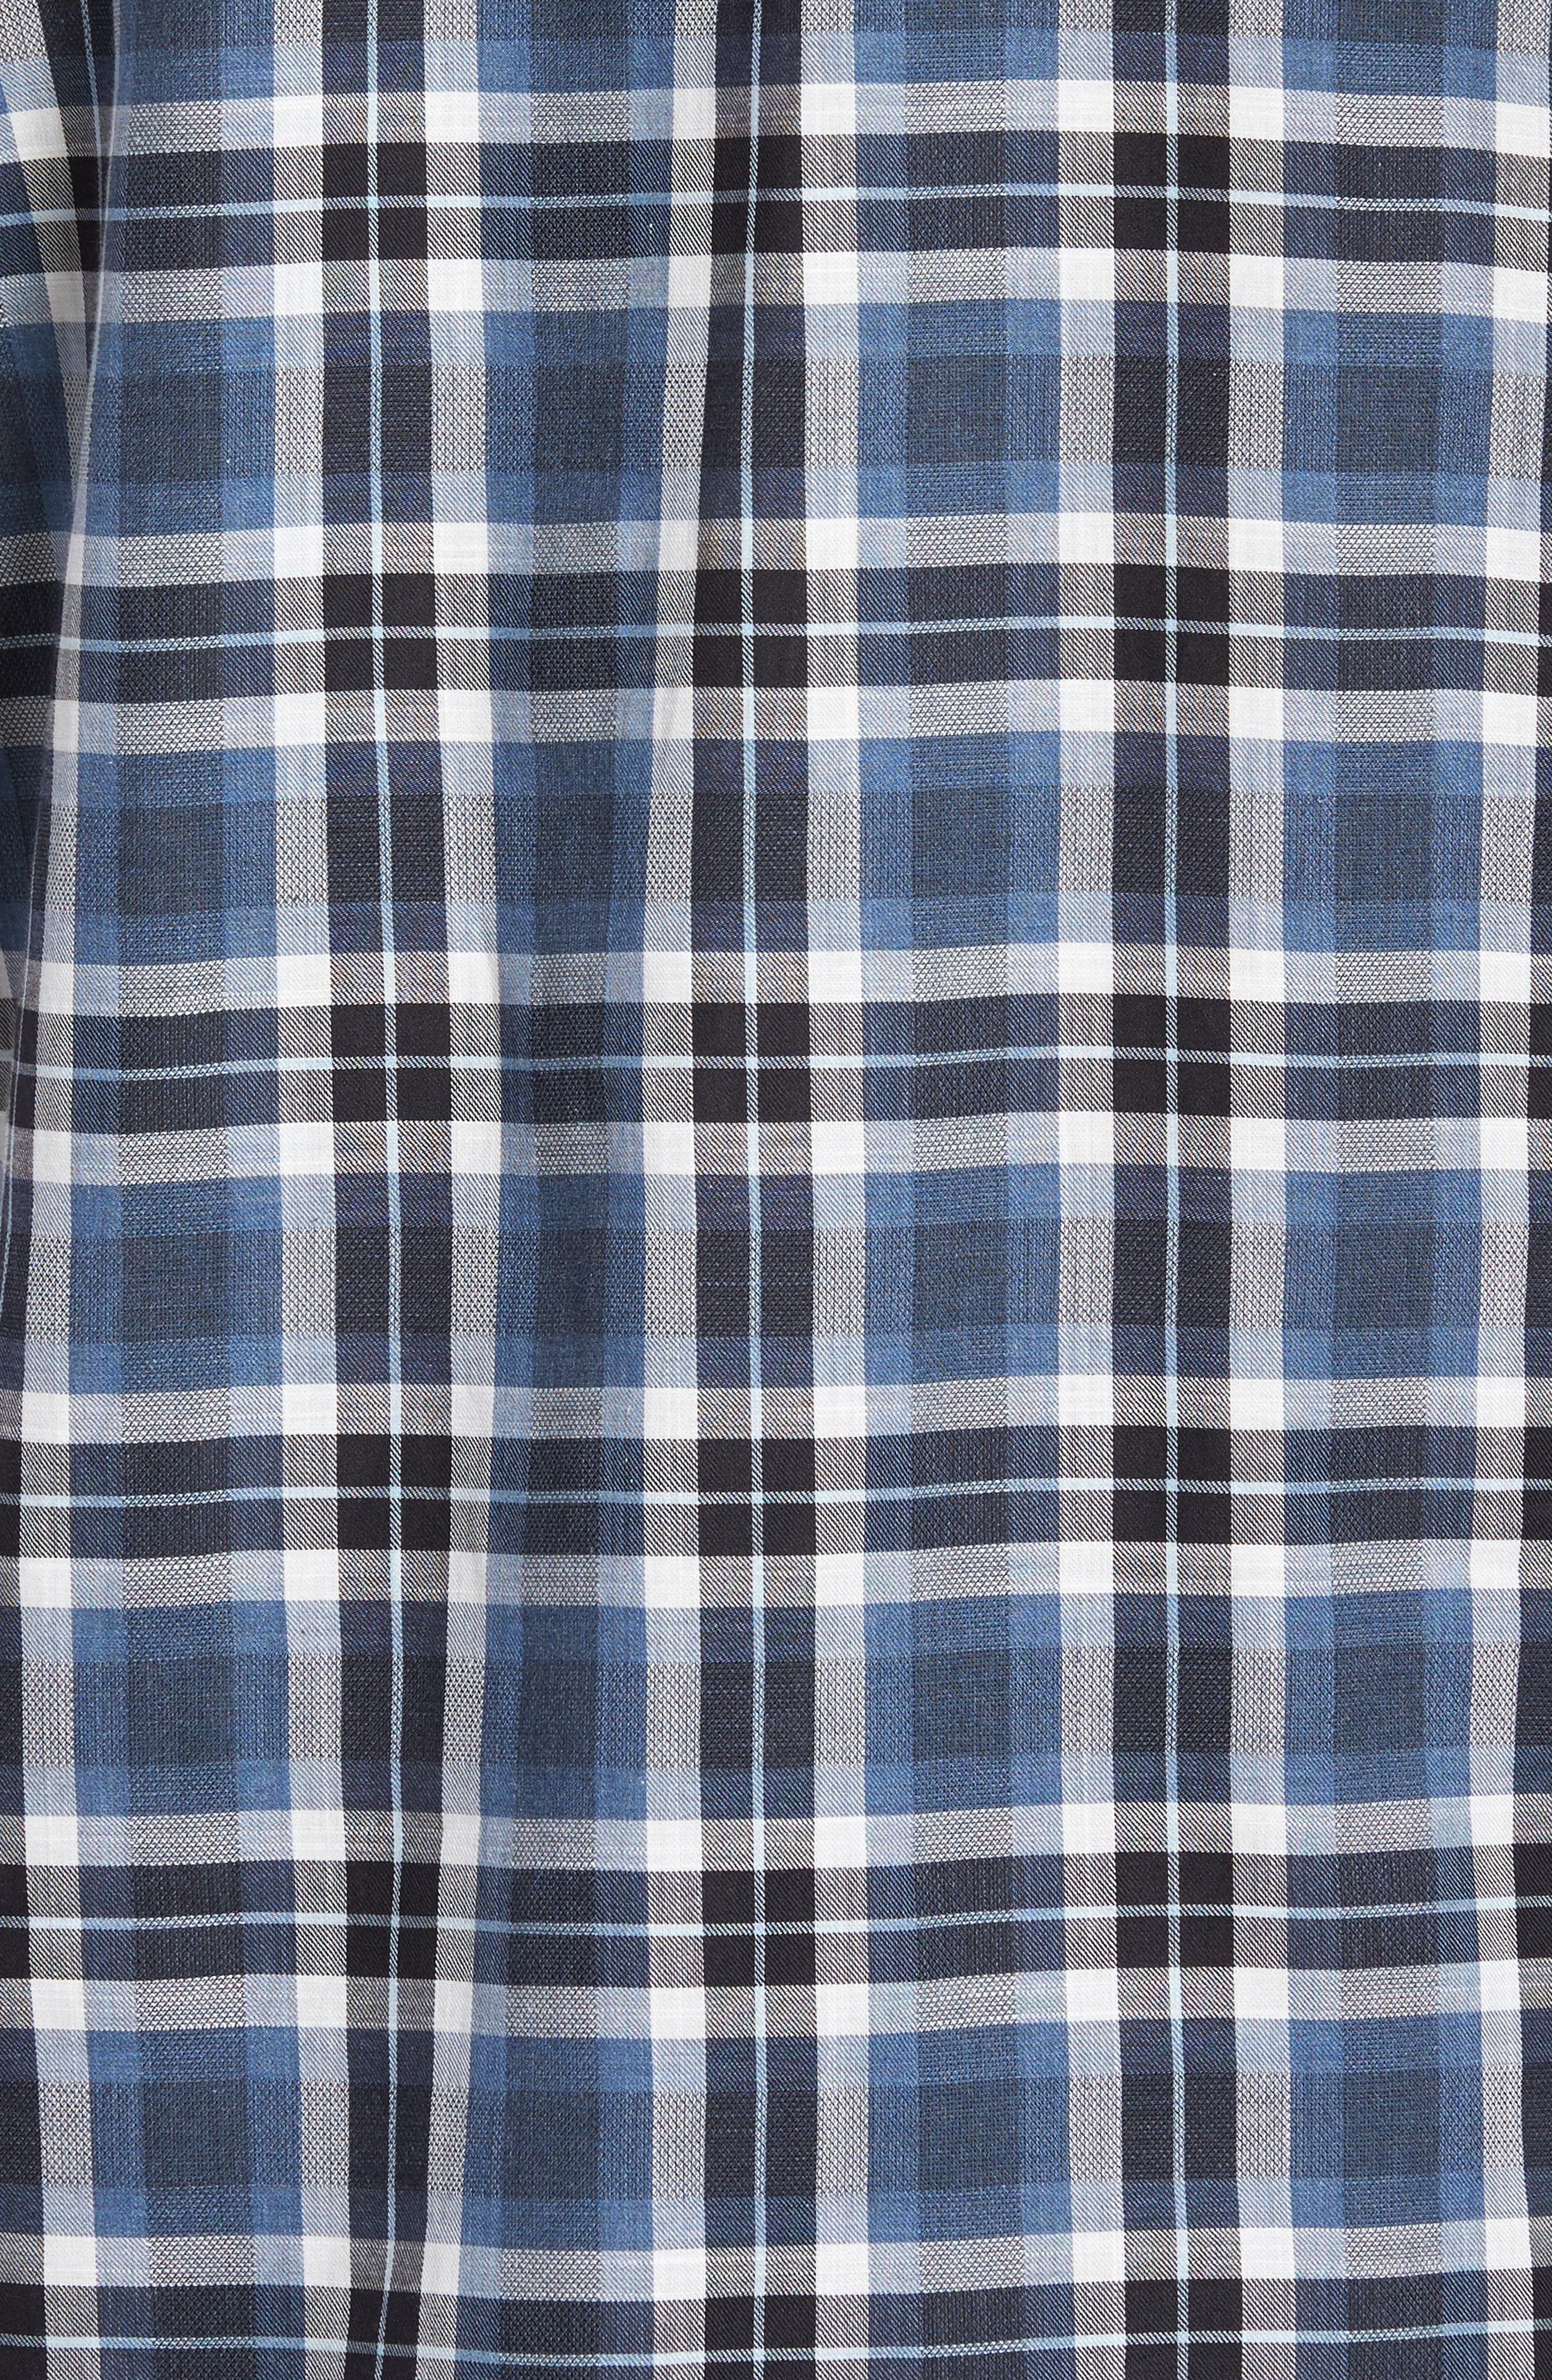 Trim Fit Plaid Flannel Shirt,                             Alternate thumbnail 5, color,                             413